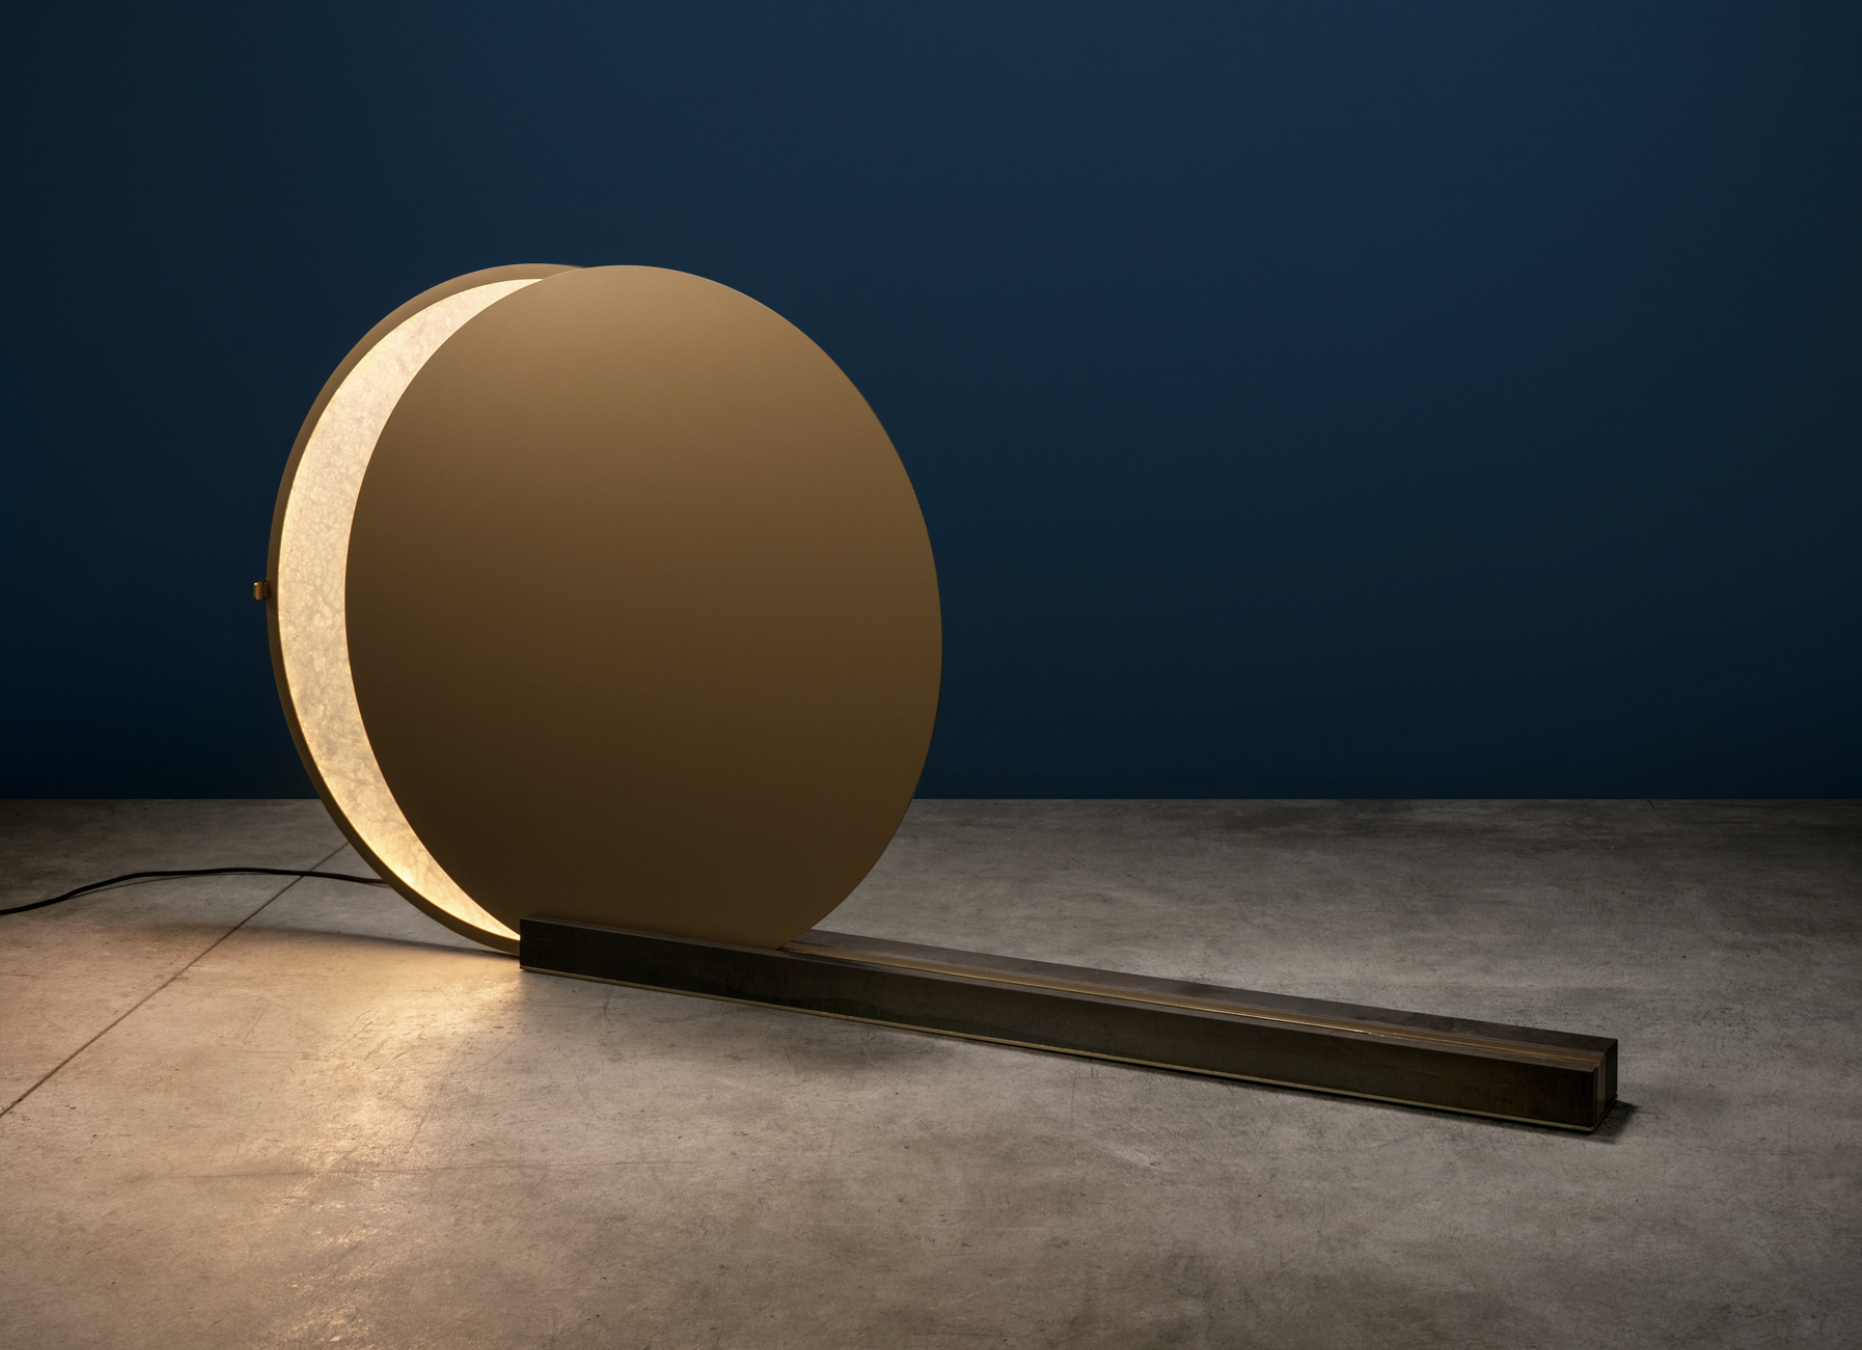 Alchemie F Floor Lamp - The antithesis between light and dark, between Sun and Moon, is everlasting, like part of the same flow of existence. Many allegorical meanings have been given to the necessary relationship between two elements that each exist as a consequence of the other. The new lamp Alchemie, designed by Giulia Archimede for Catellani & Smith, investigates this dimension whose components are diametrically opposed but always, and for ever, connected. Alchemie is an exquisite sculpture composed of two discs: the former, made of alabaster and lit by LEDs, stays fixed, while the latter slides on a track-base made of Medea limestone. The interaction between light and shade reaches its peak the moment when the two discs overlap and almost mimic an eclipse.   Matter of Stuff